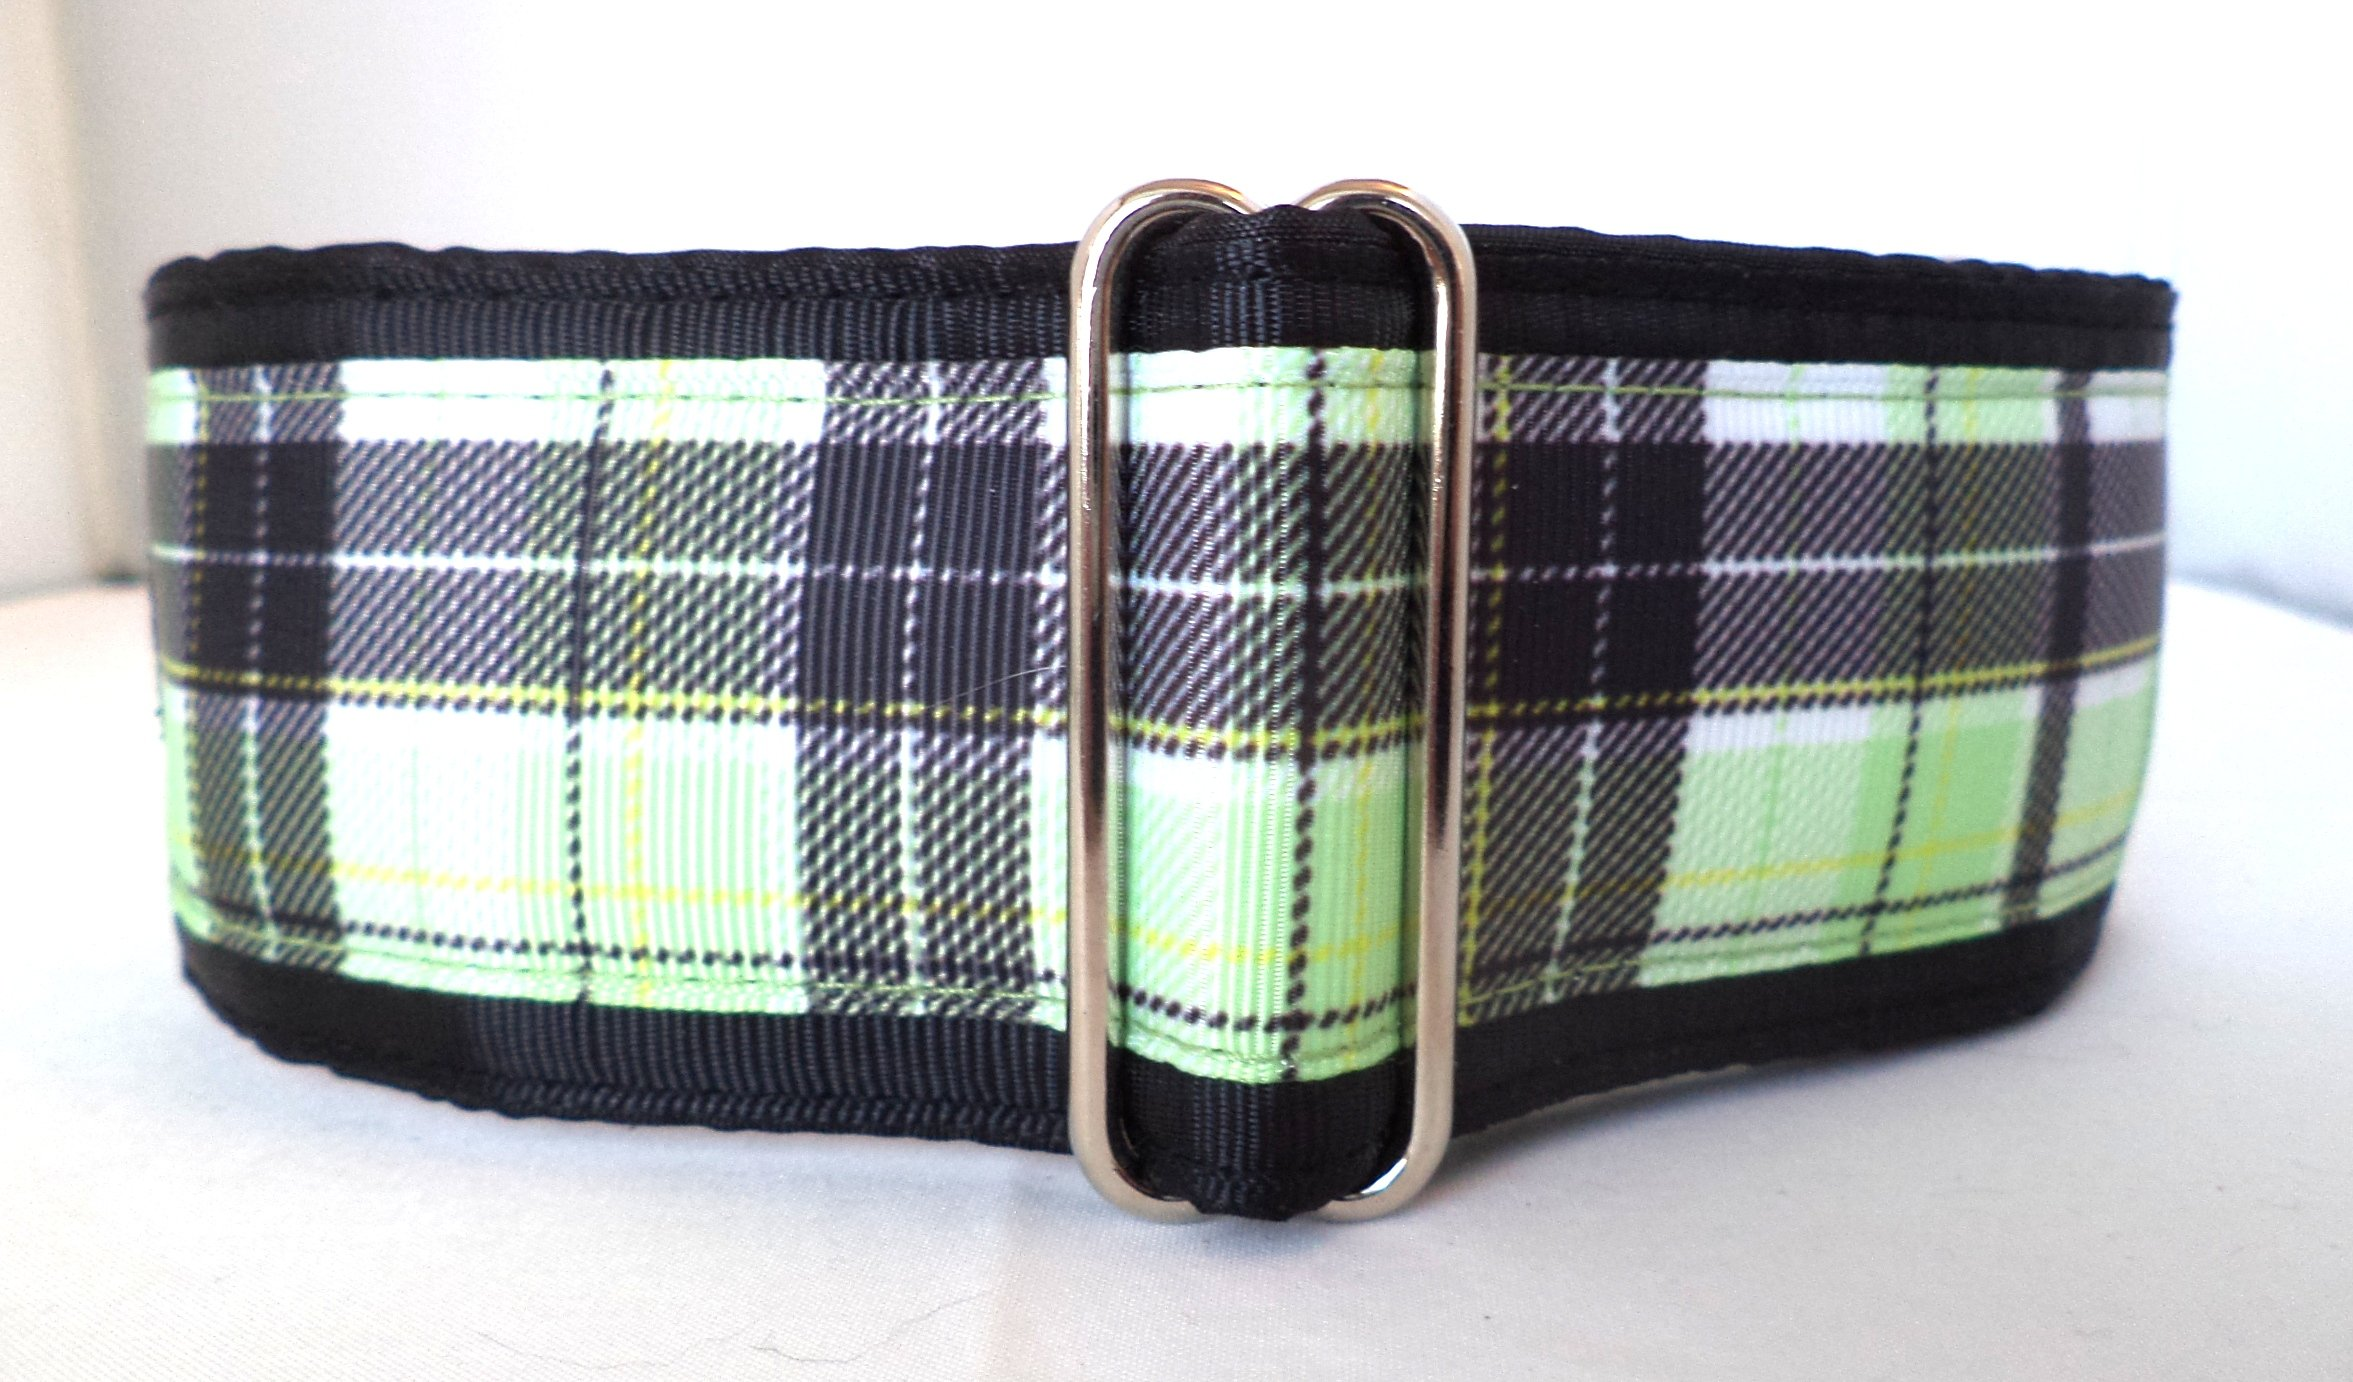 Regal Hound Designs 2'' Wide Martingale Dog Collar, Lined, 2 Sizes: Medium, Large/XL, Green and Black Plaid Design (Large/XL 17-26'') by Regal Hound Designs